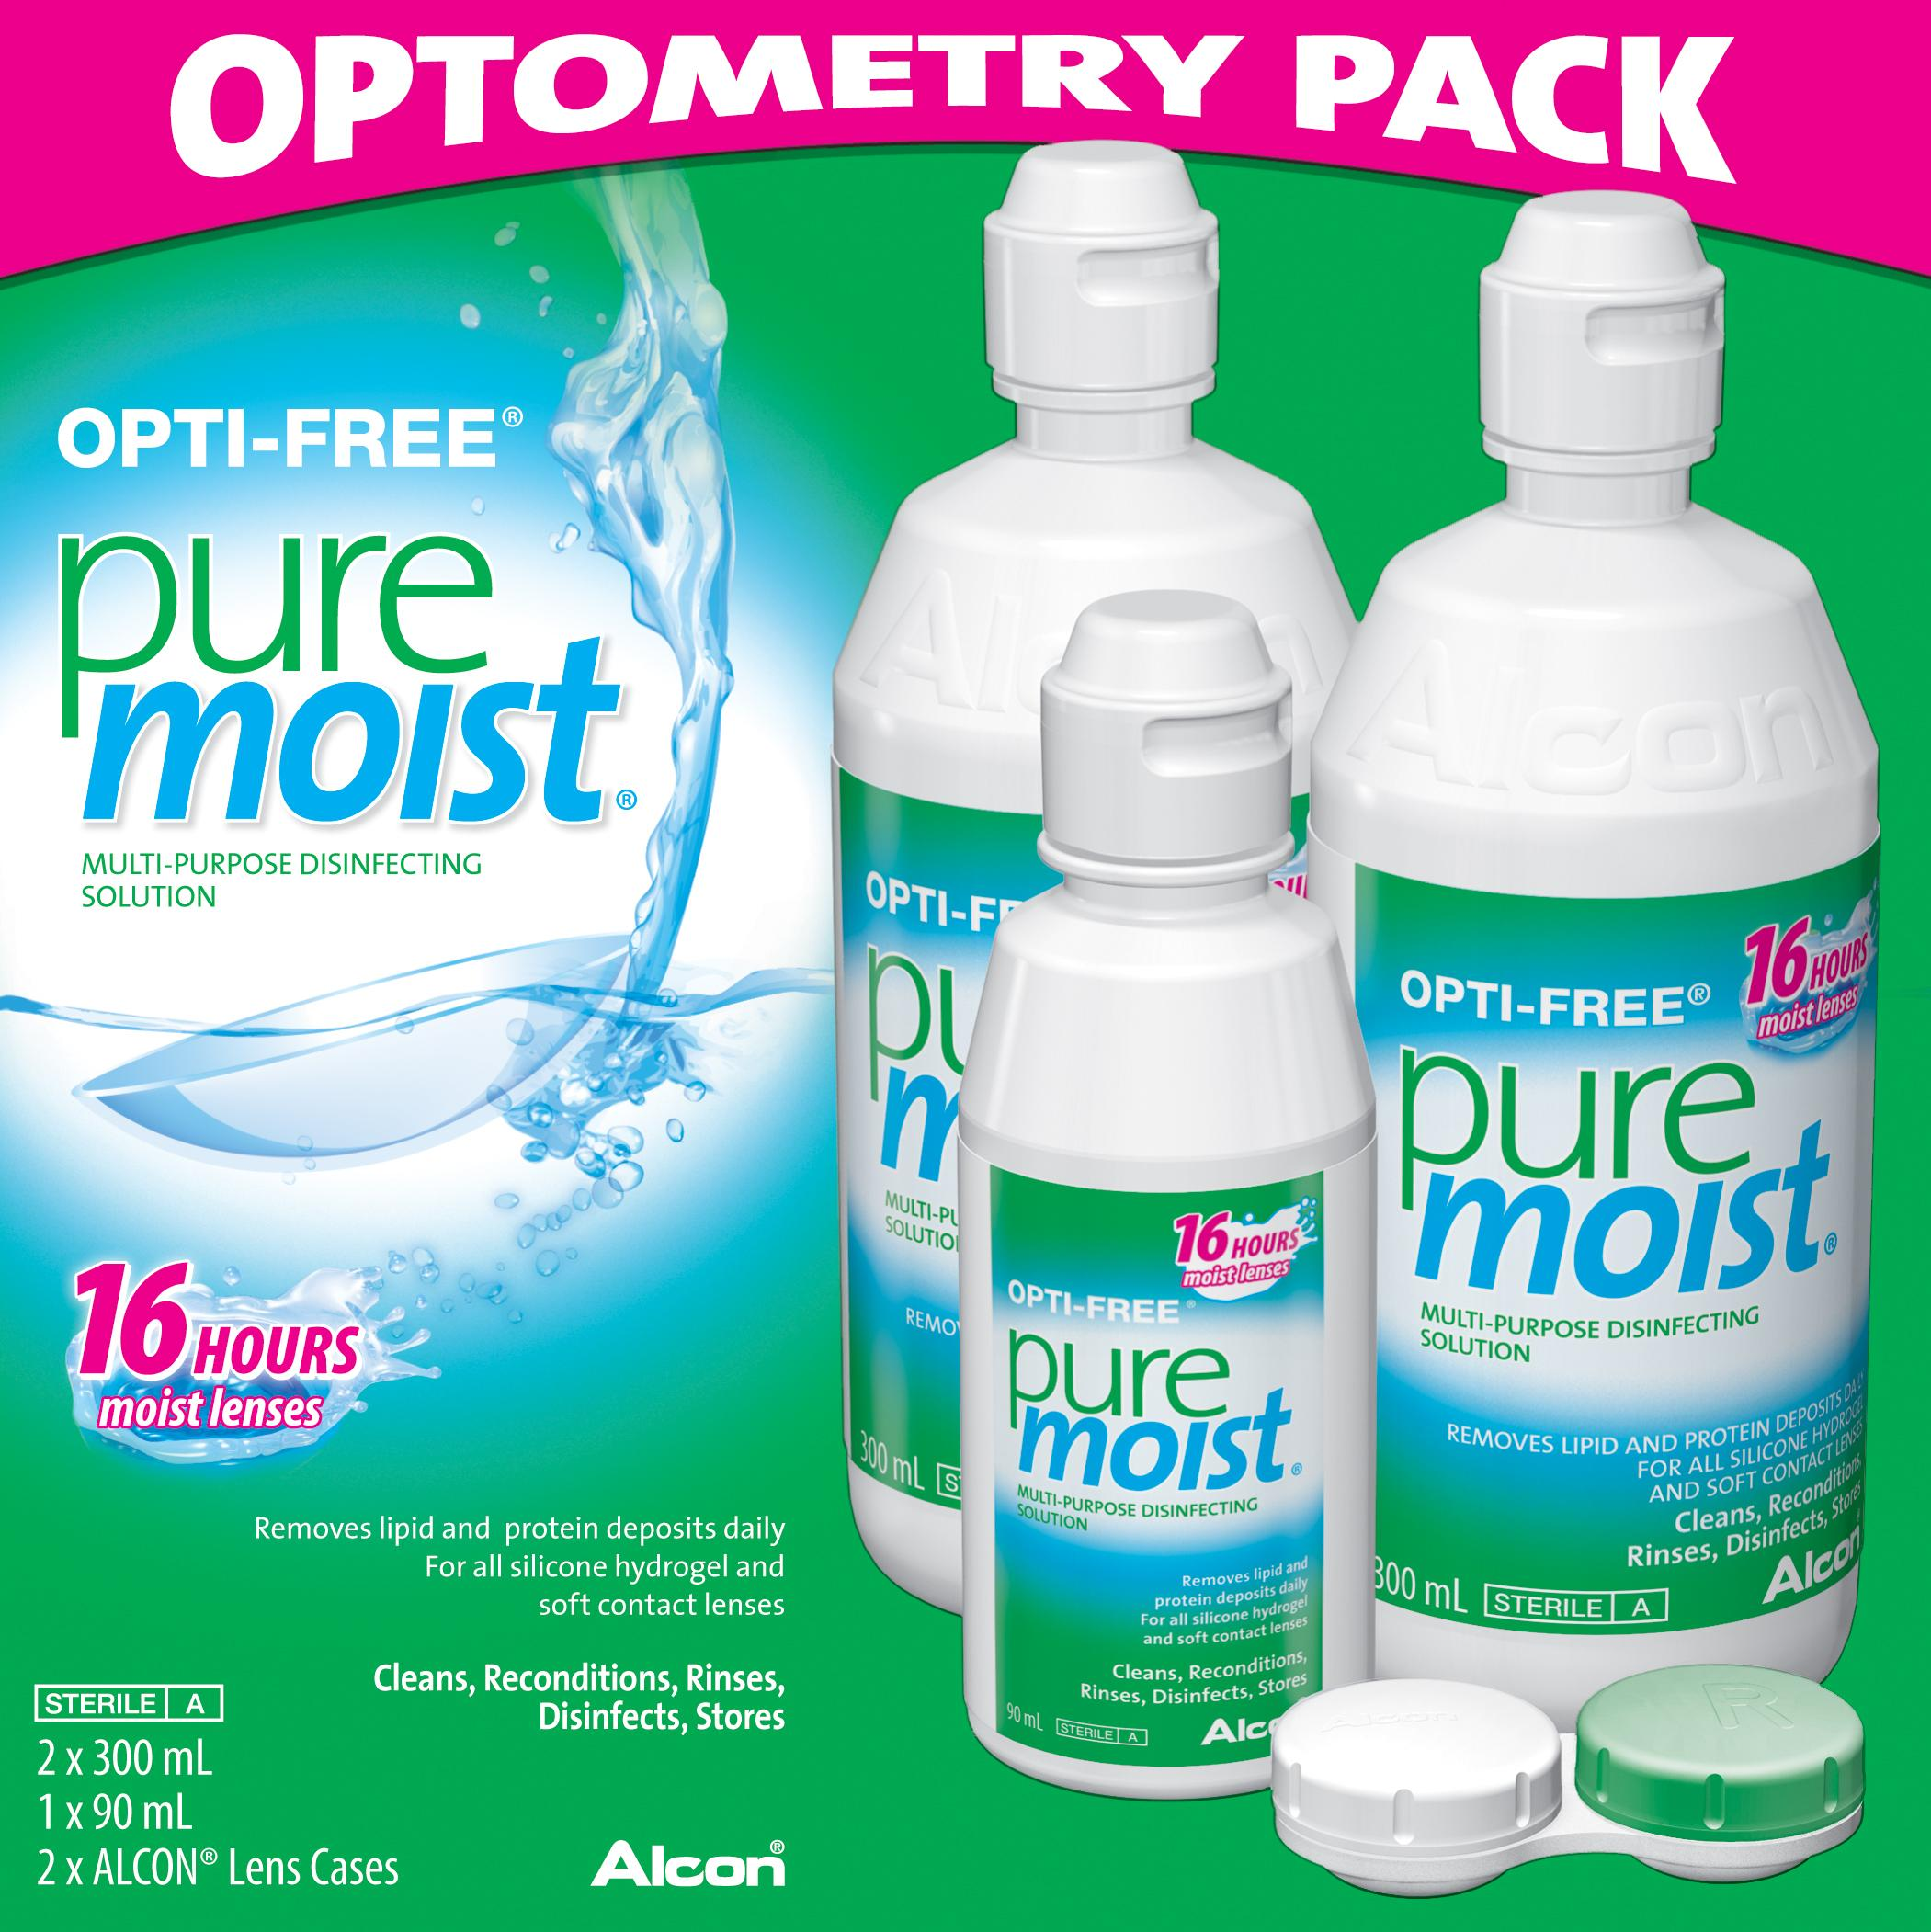 OptiFree Pure Moist Value Pack